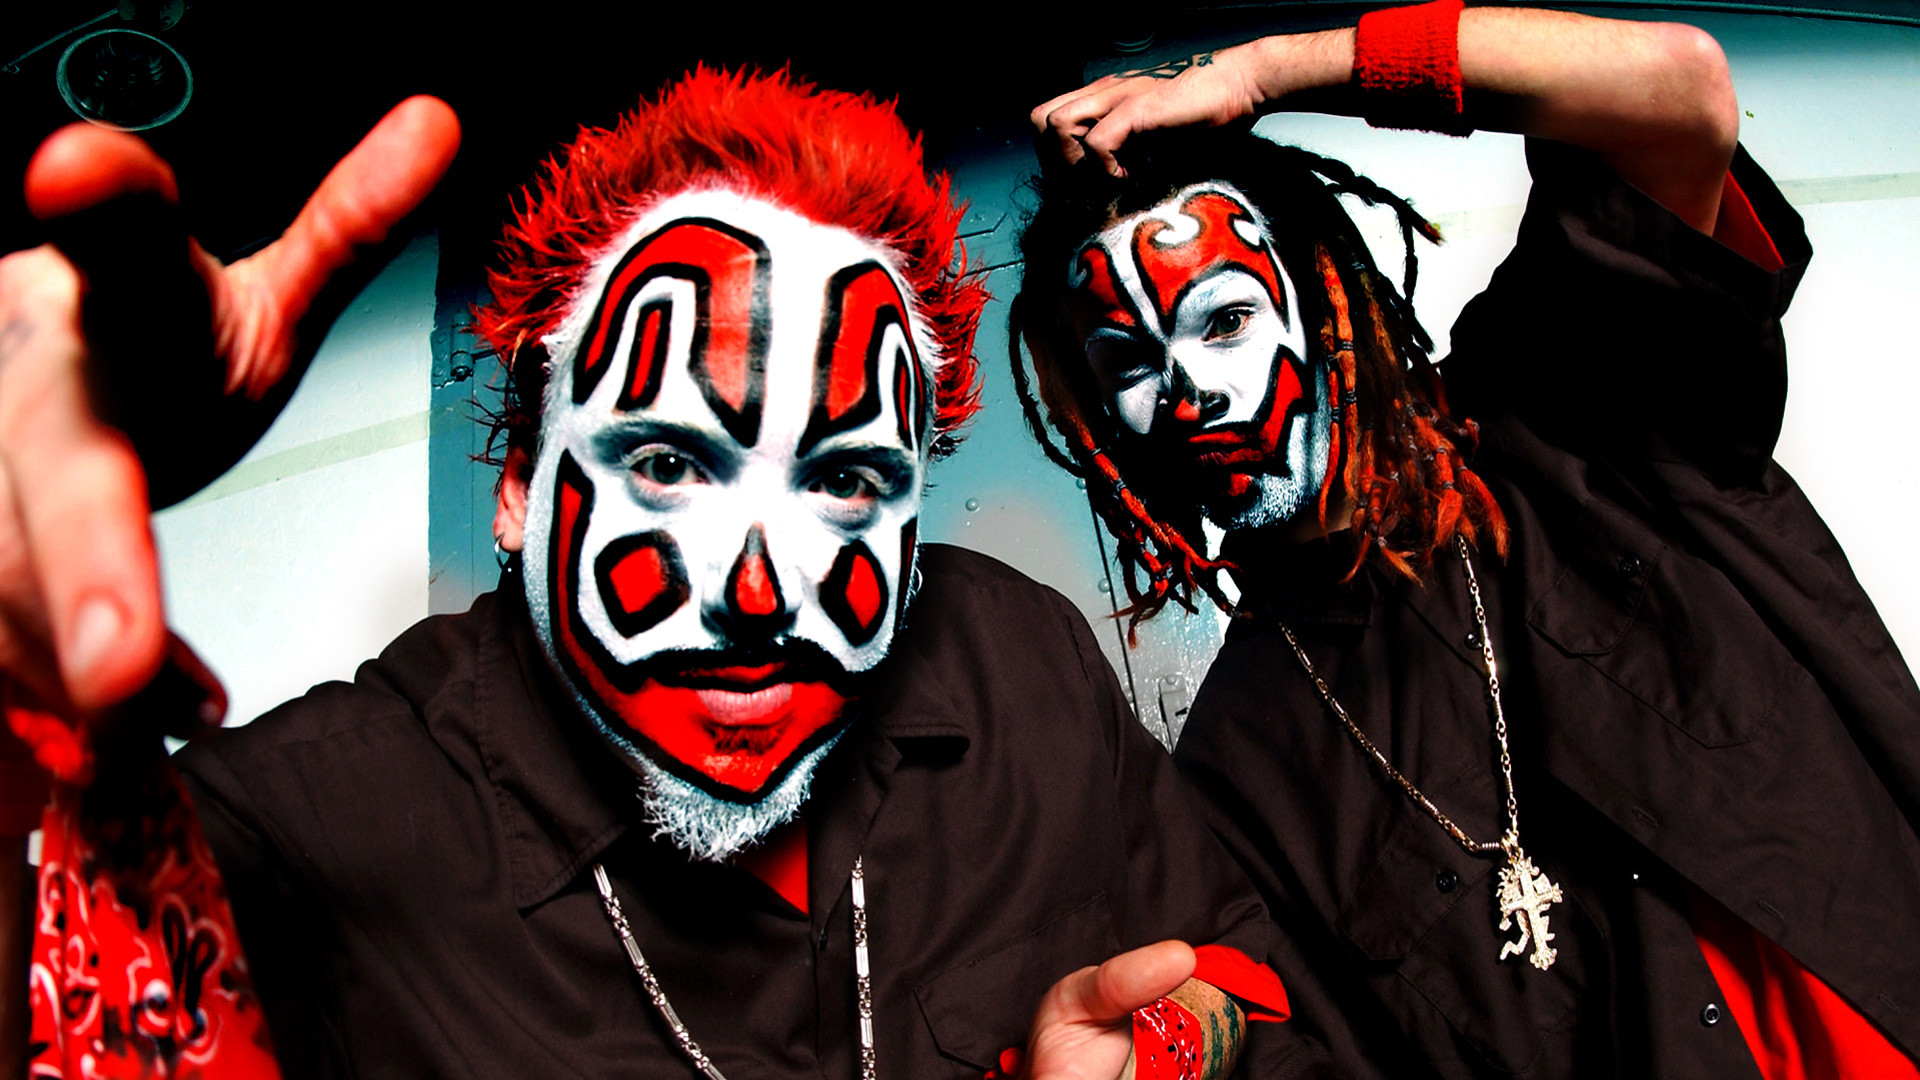 Icp Wallpaper Juggalo 54 Images